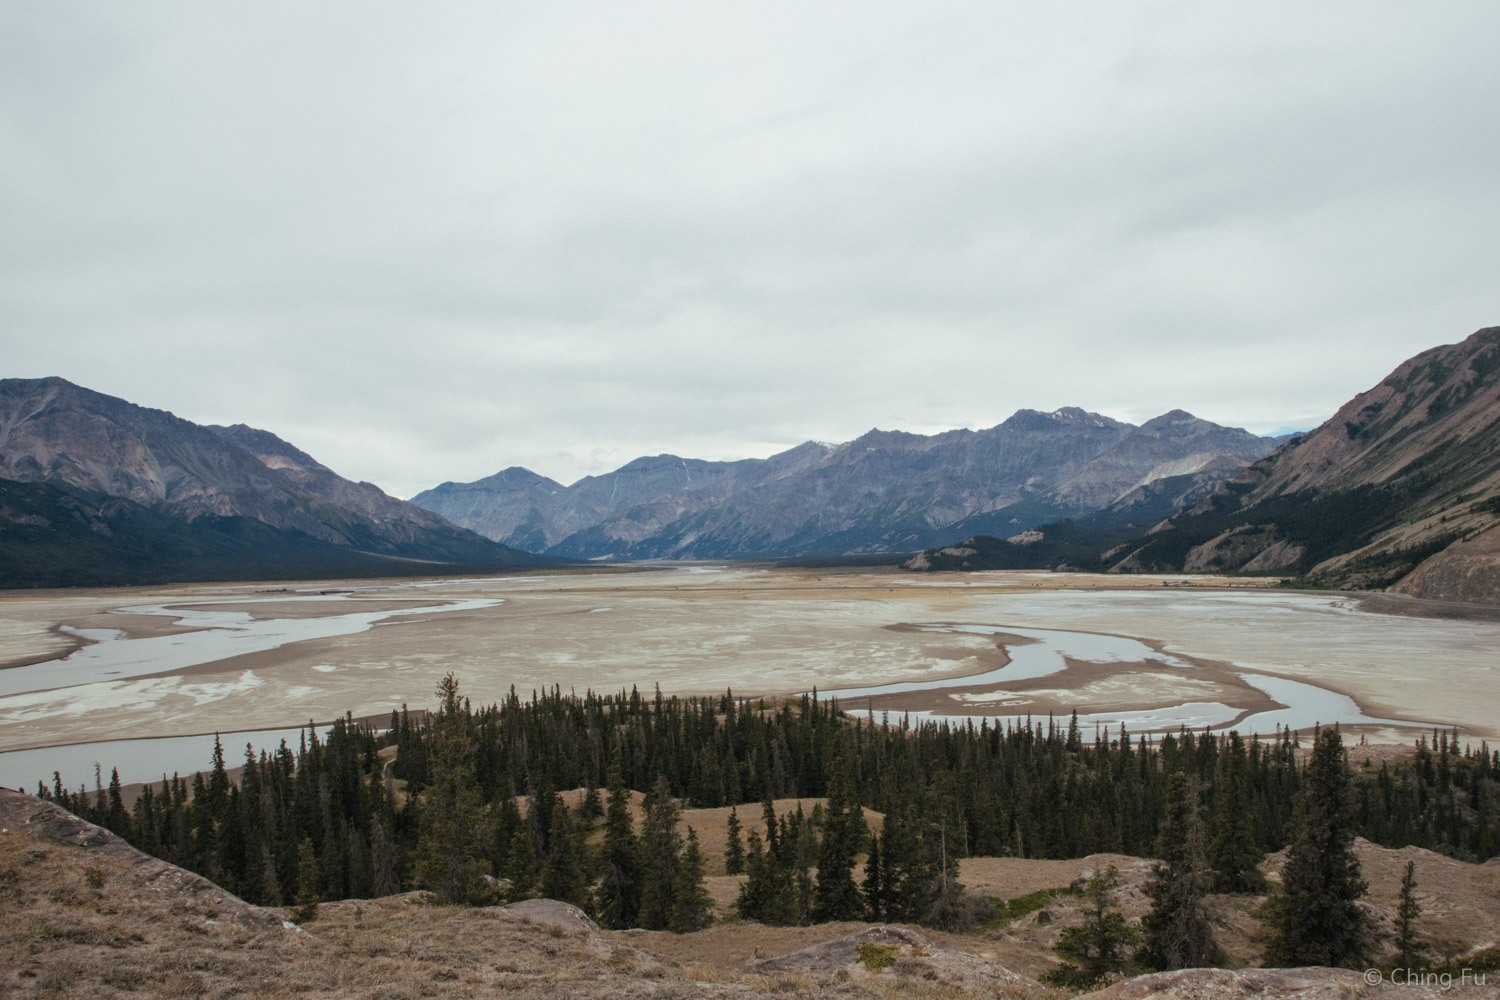 This was our view of the dried lake section from the top of the island.